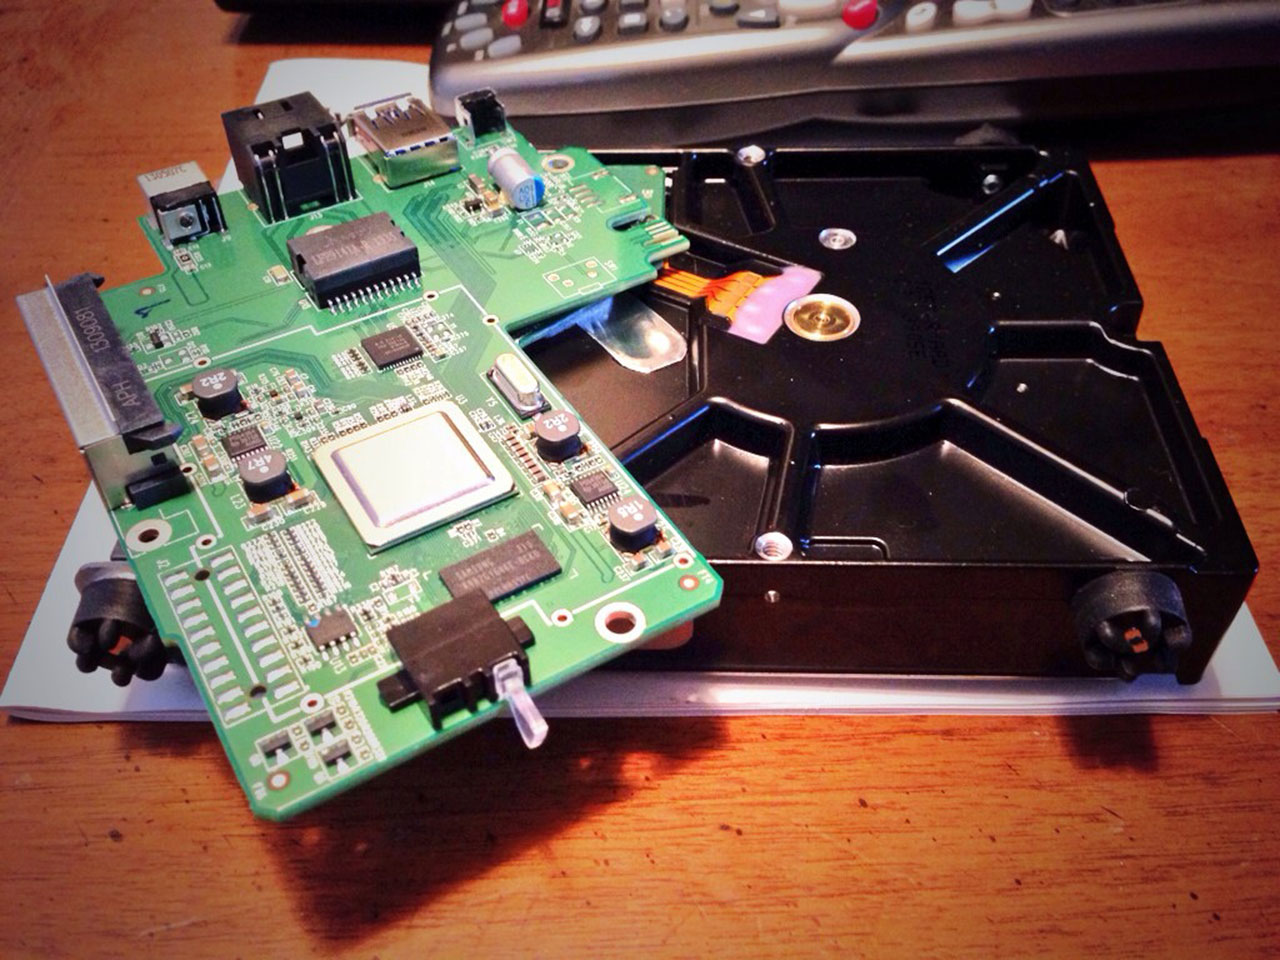 The internals of a Western Digital MyCloud device